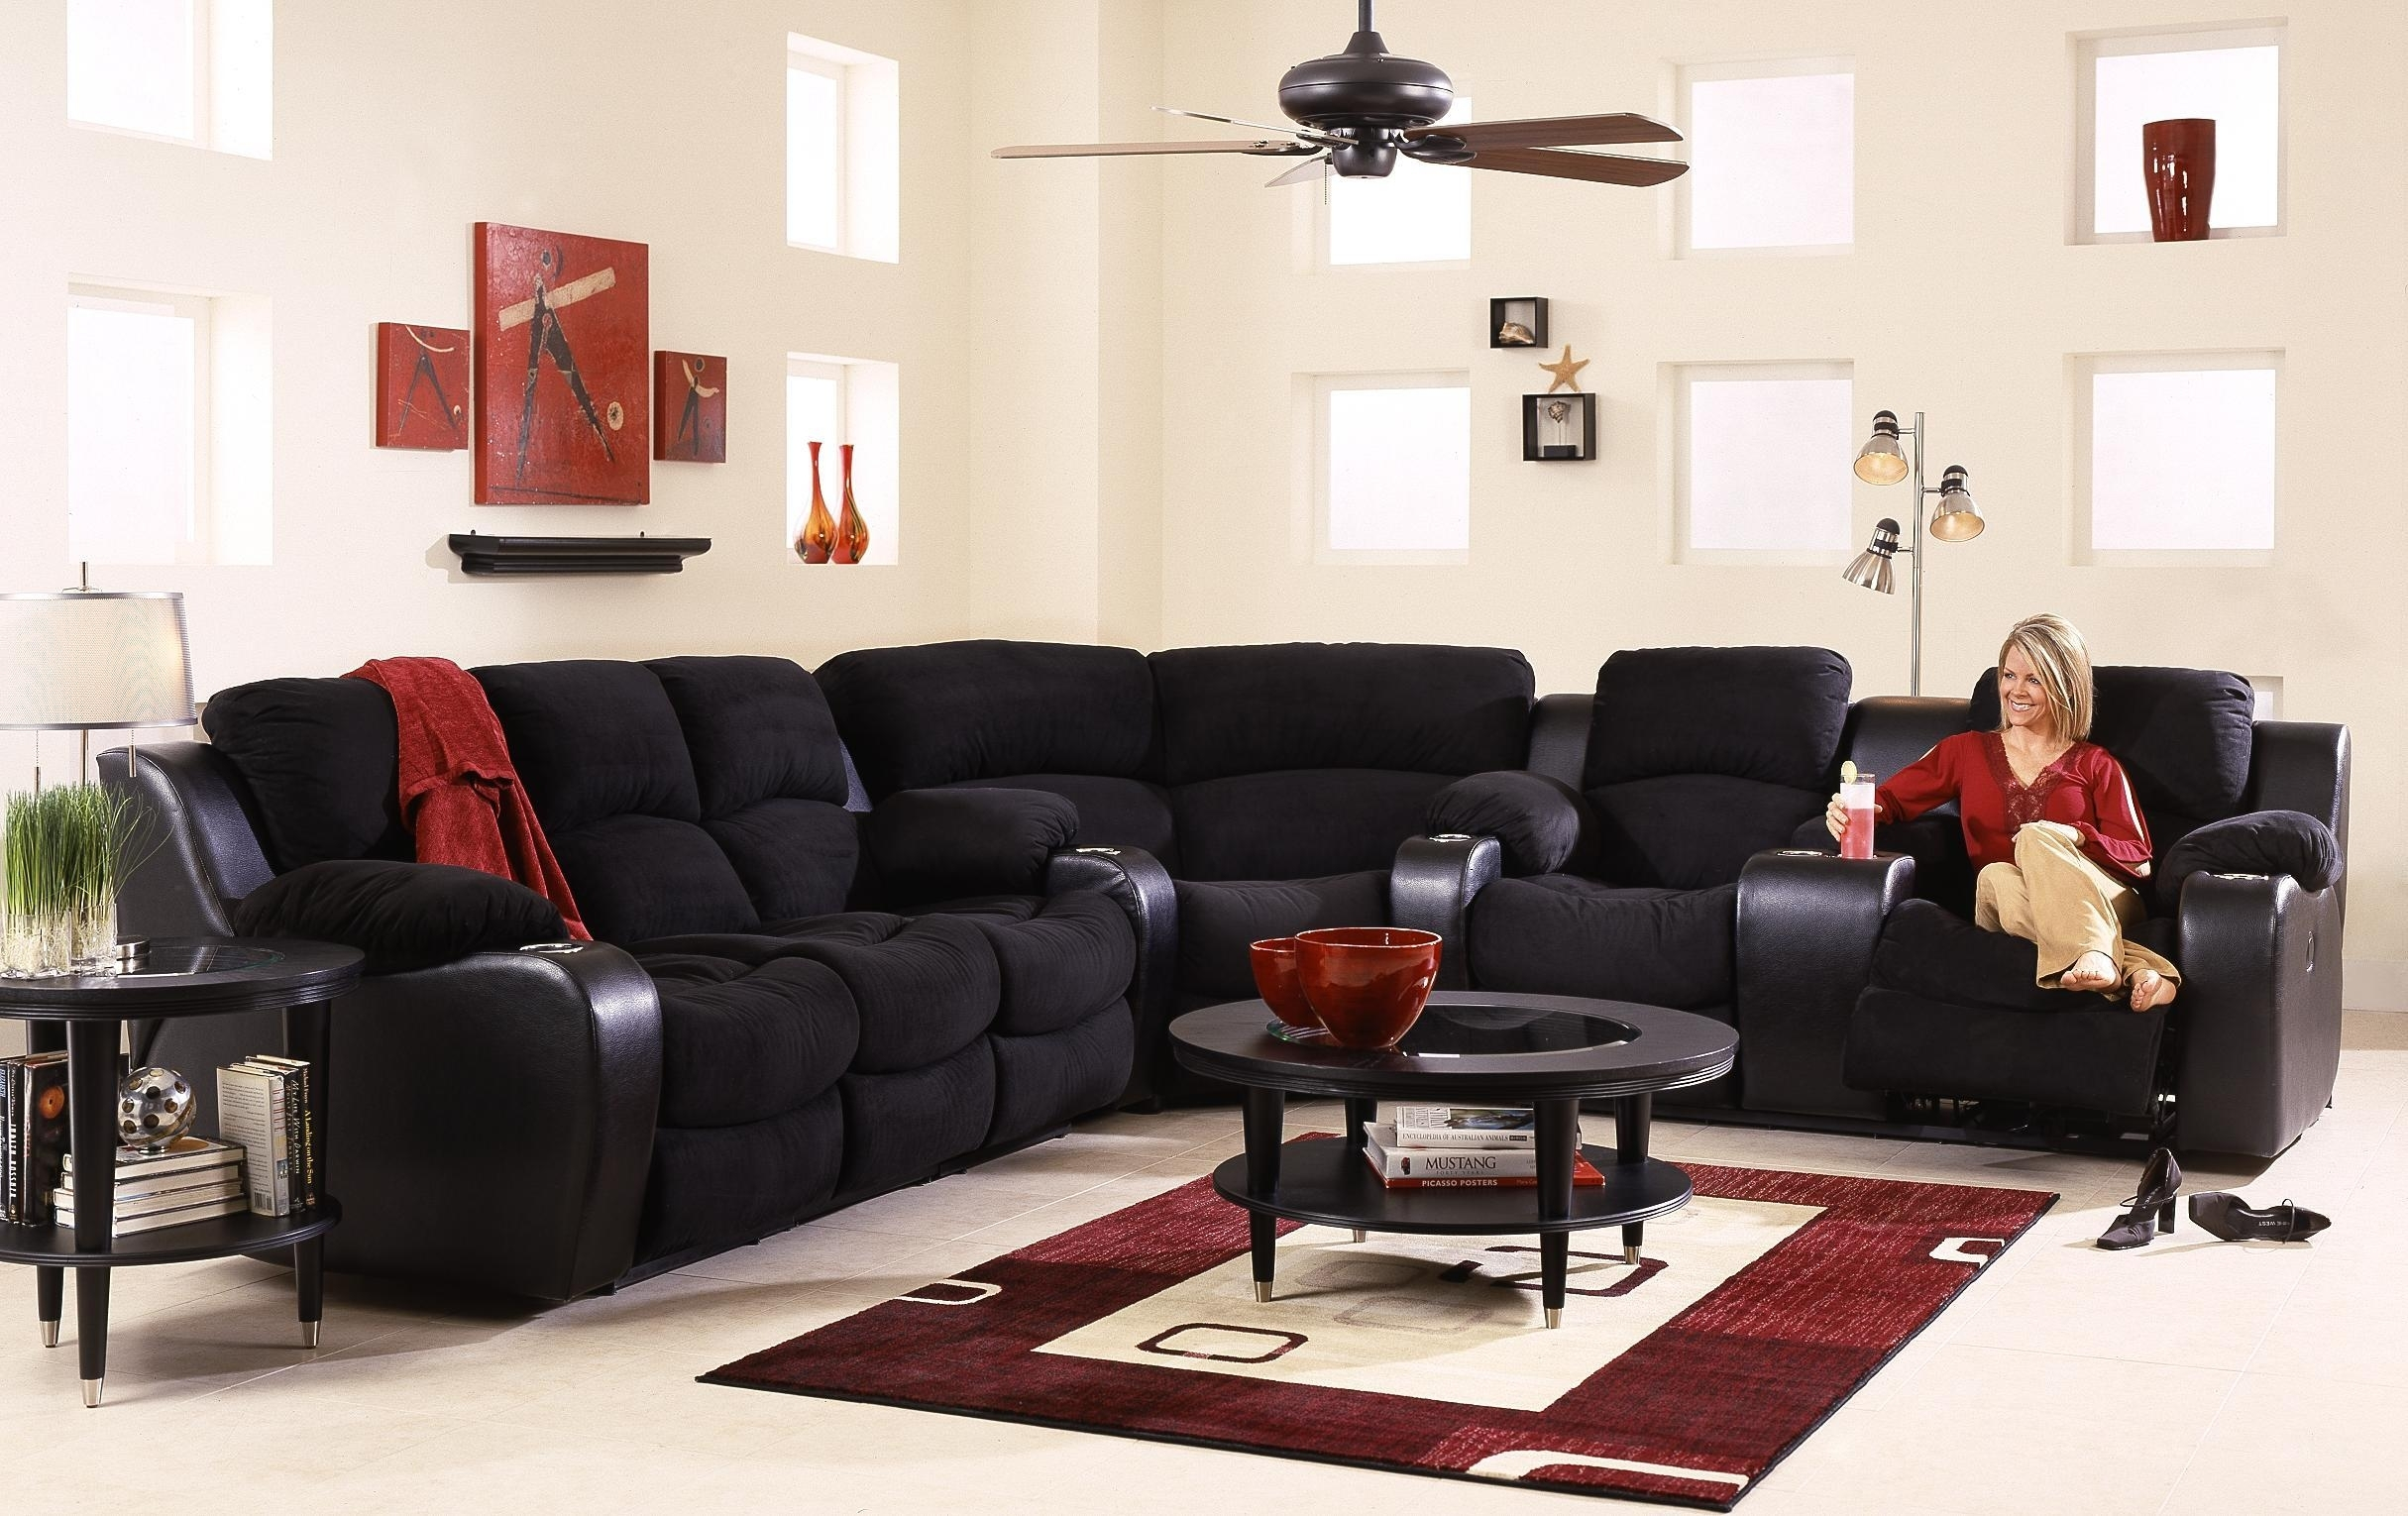 Awesome Sectional Sofas With Cup Holders Unique – Tatsuyoru Throughout Grand Furniture Sectional Sofas (View 5 of 10)